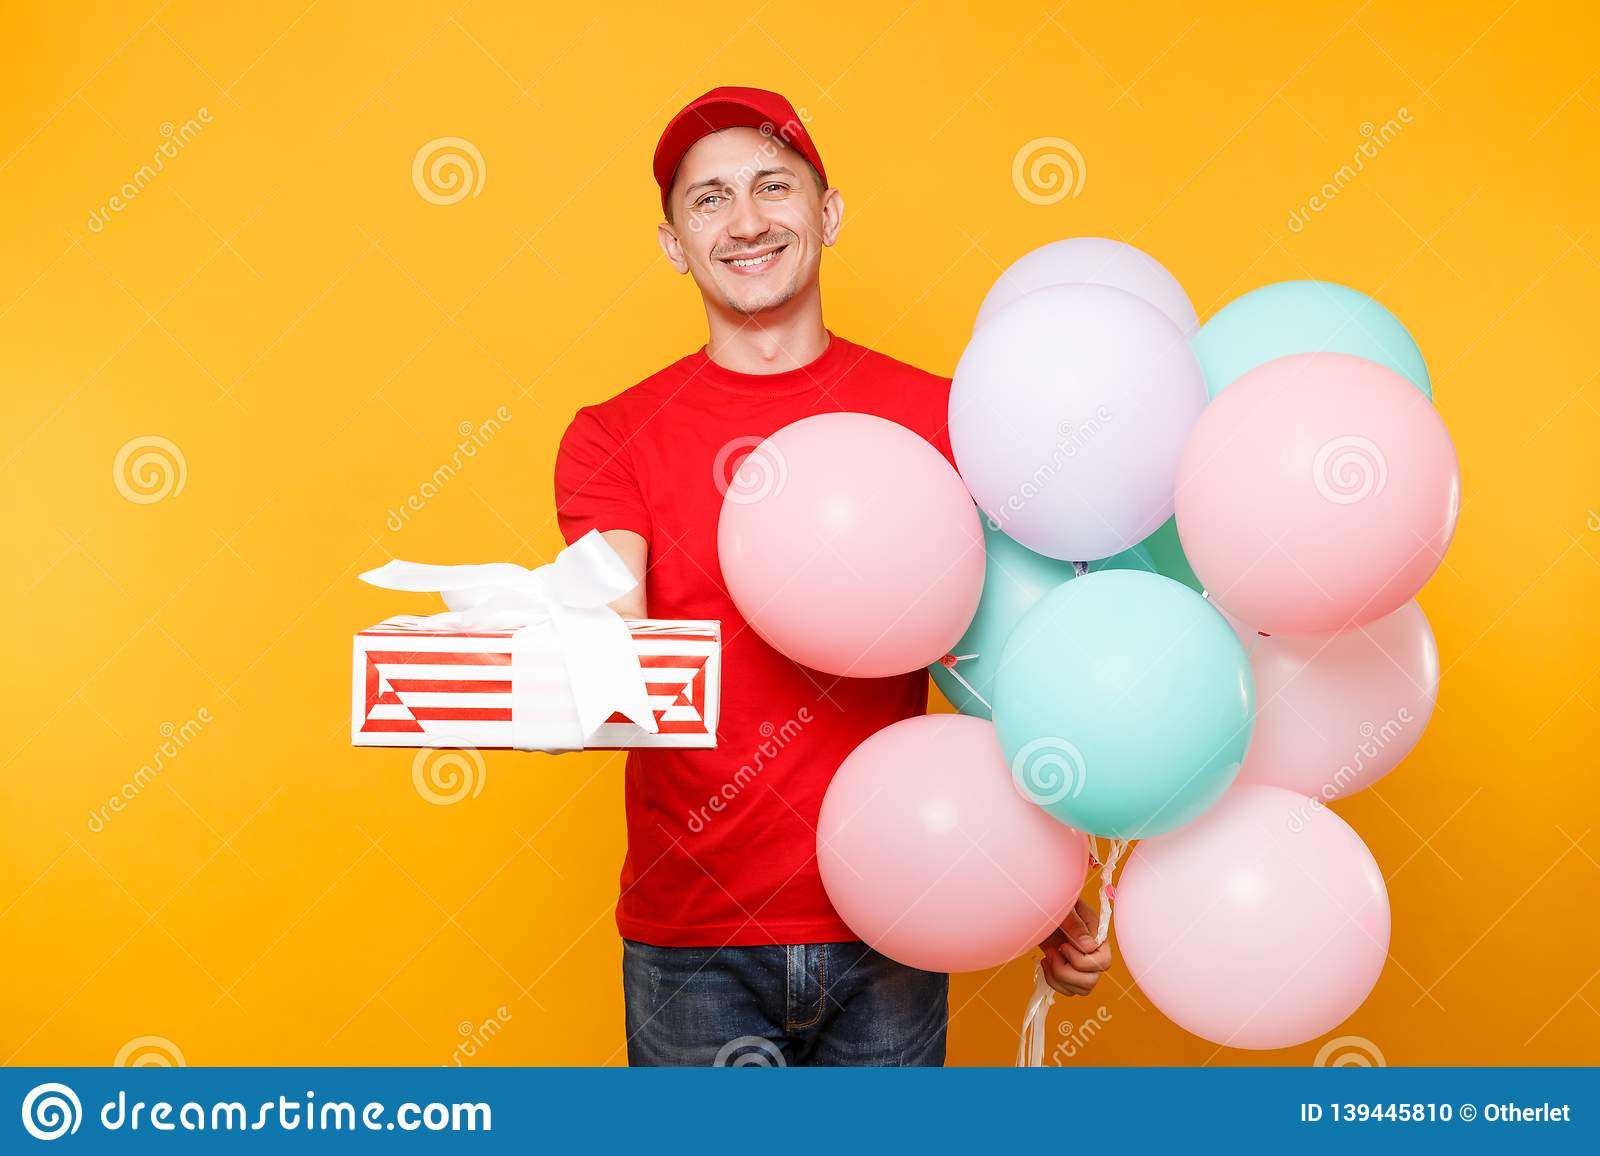 Delivery man in red uniform isolated on yellow orange background. Male employee in cap, t-shirt courier dealer holding